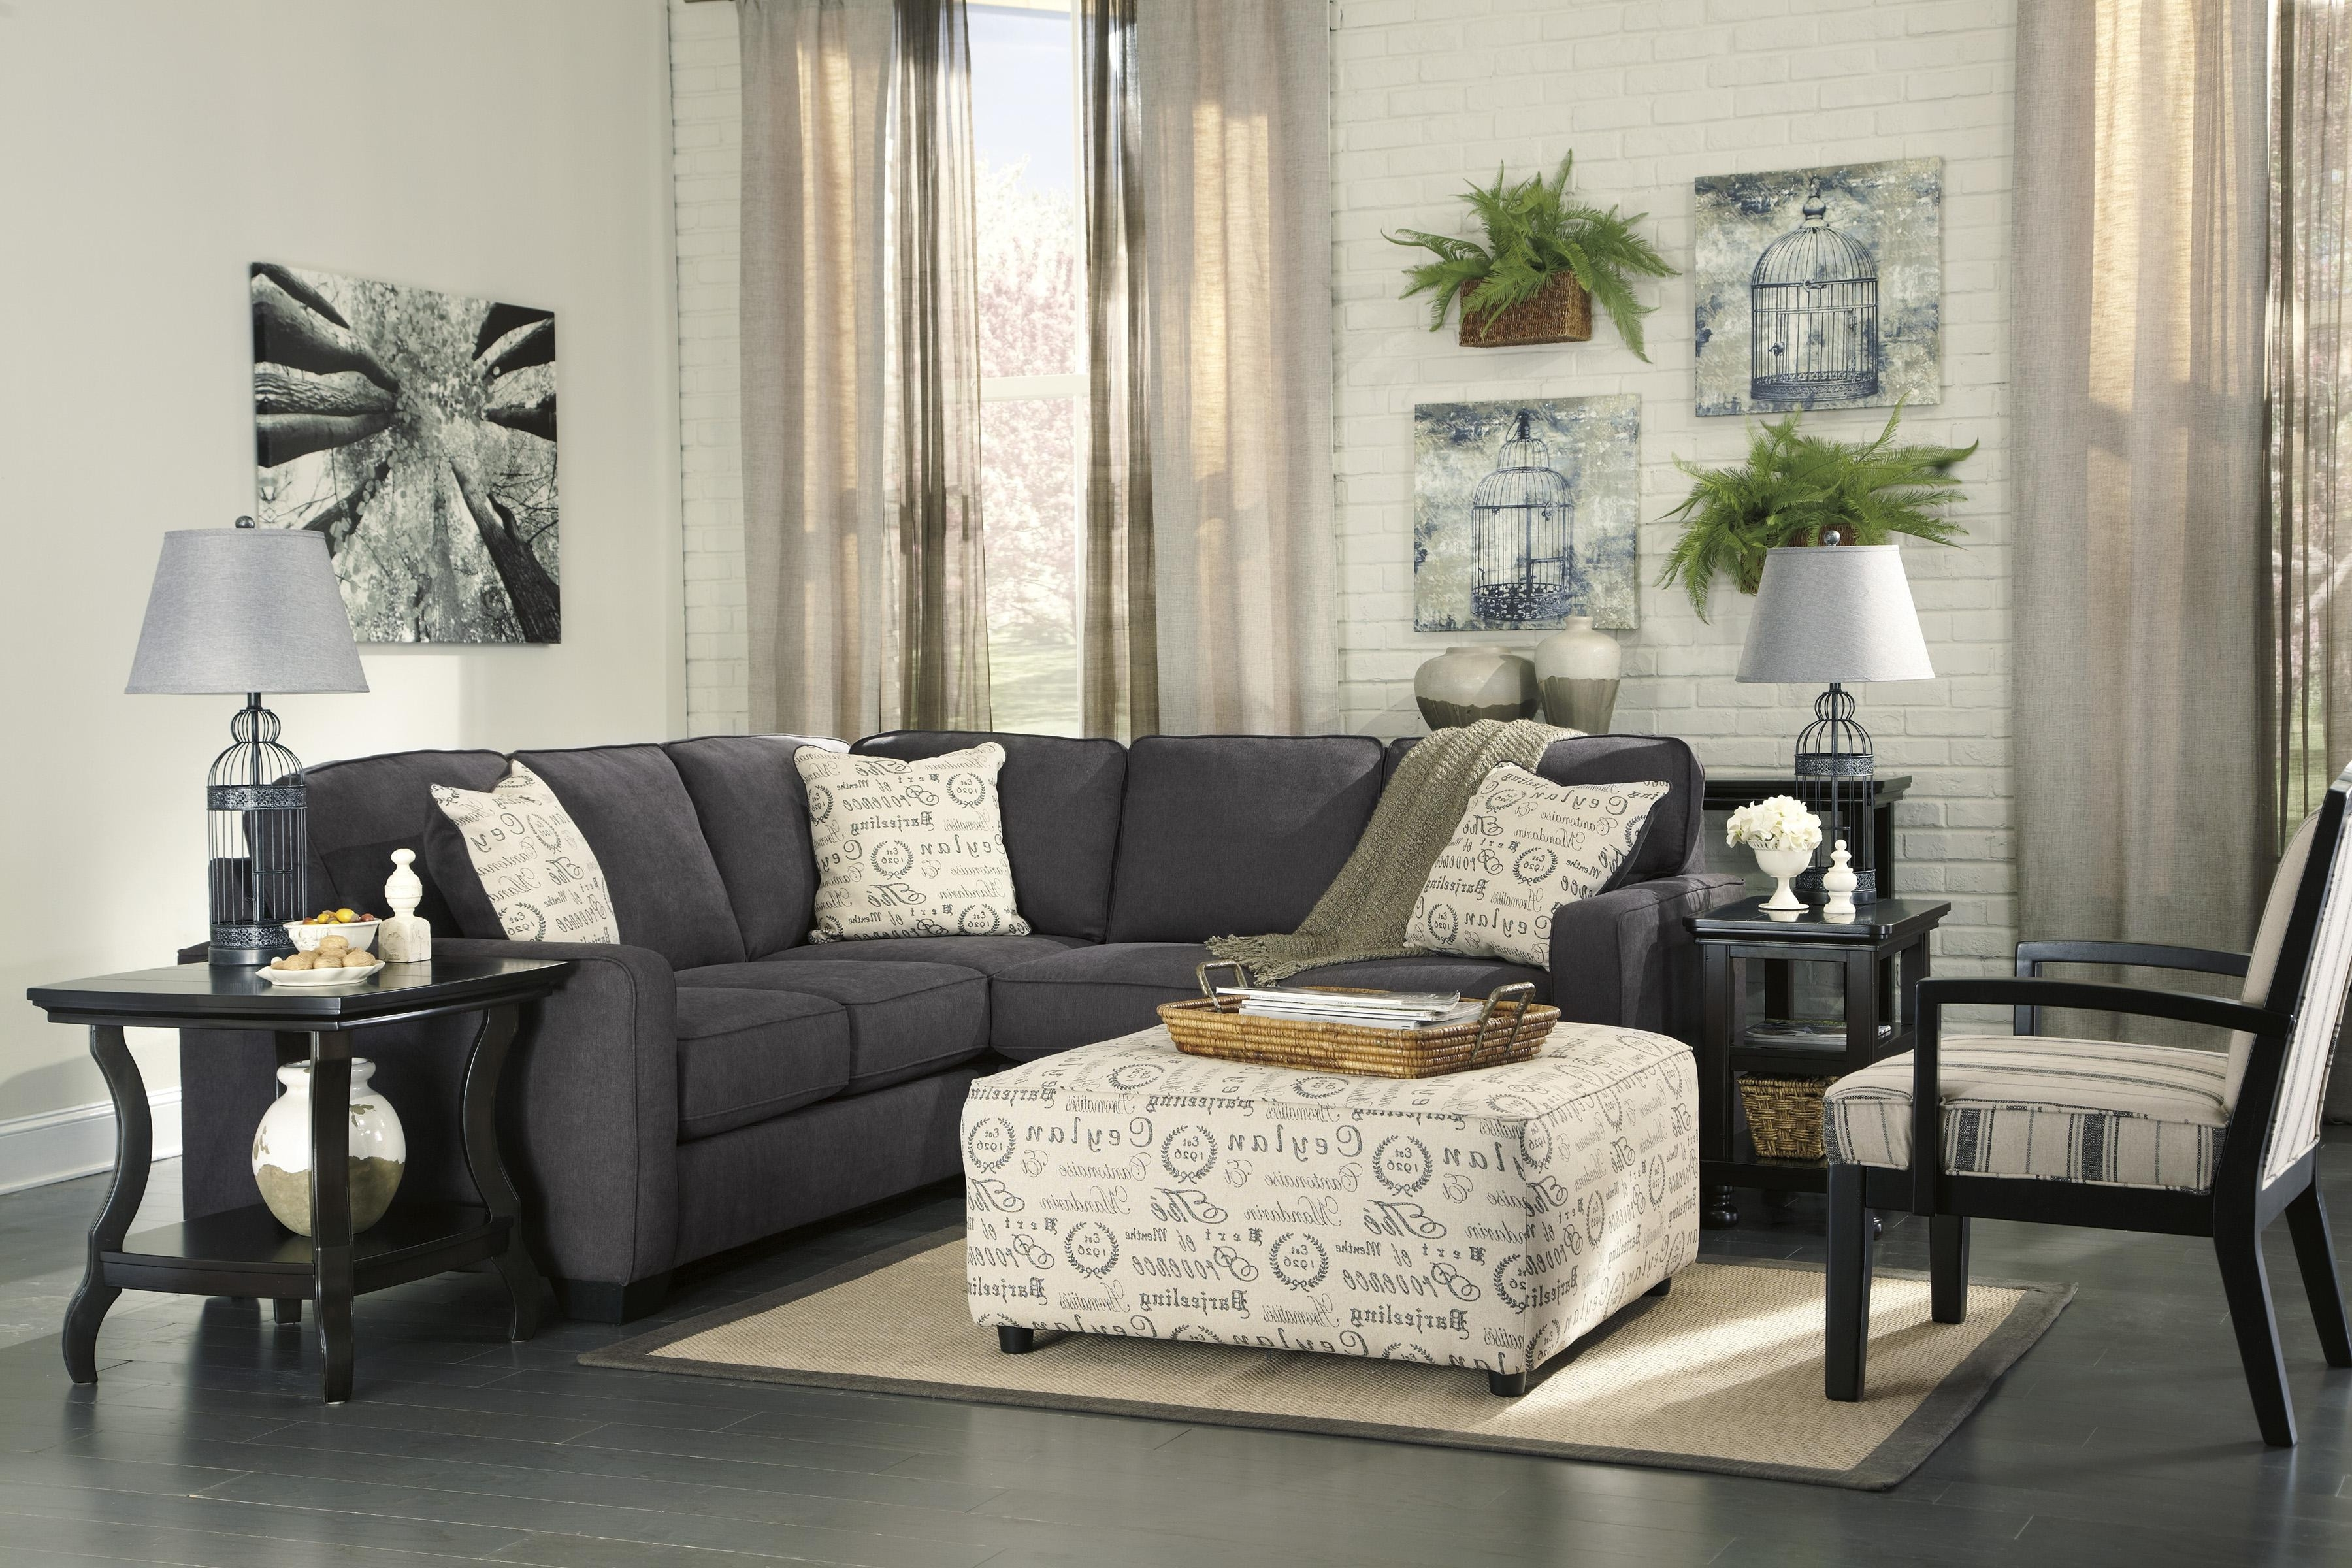 Ivan Smith Furniture Greenville Tx Creative Locations Decoration Pertaining To Favorite Ivan Smith Sectional Sofas (View 6 of 15)